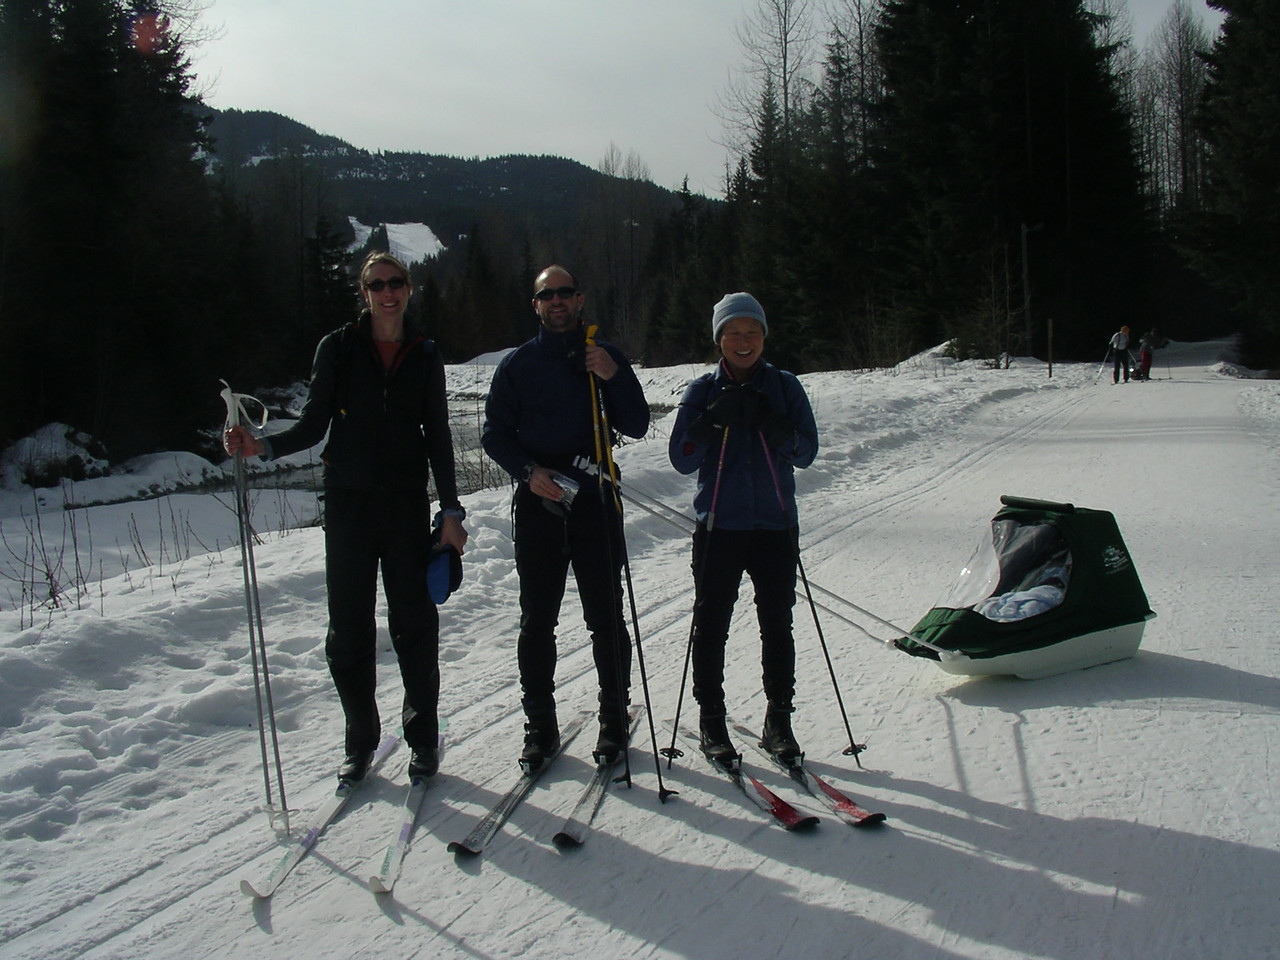 Gretchen (who was also vacationing in Whistler for the weekend) Jeff, Kim, and Corri in her little ski carriage.